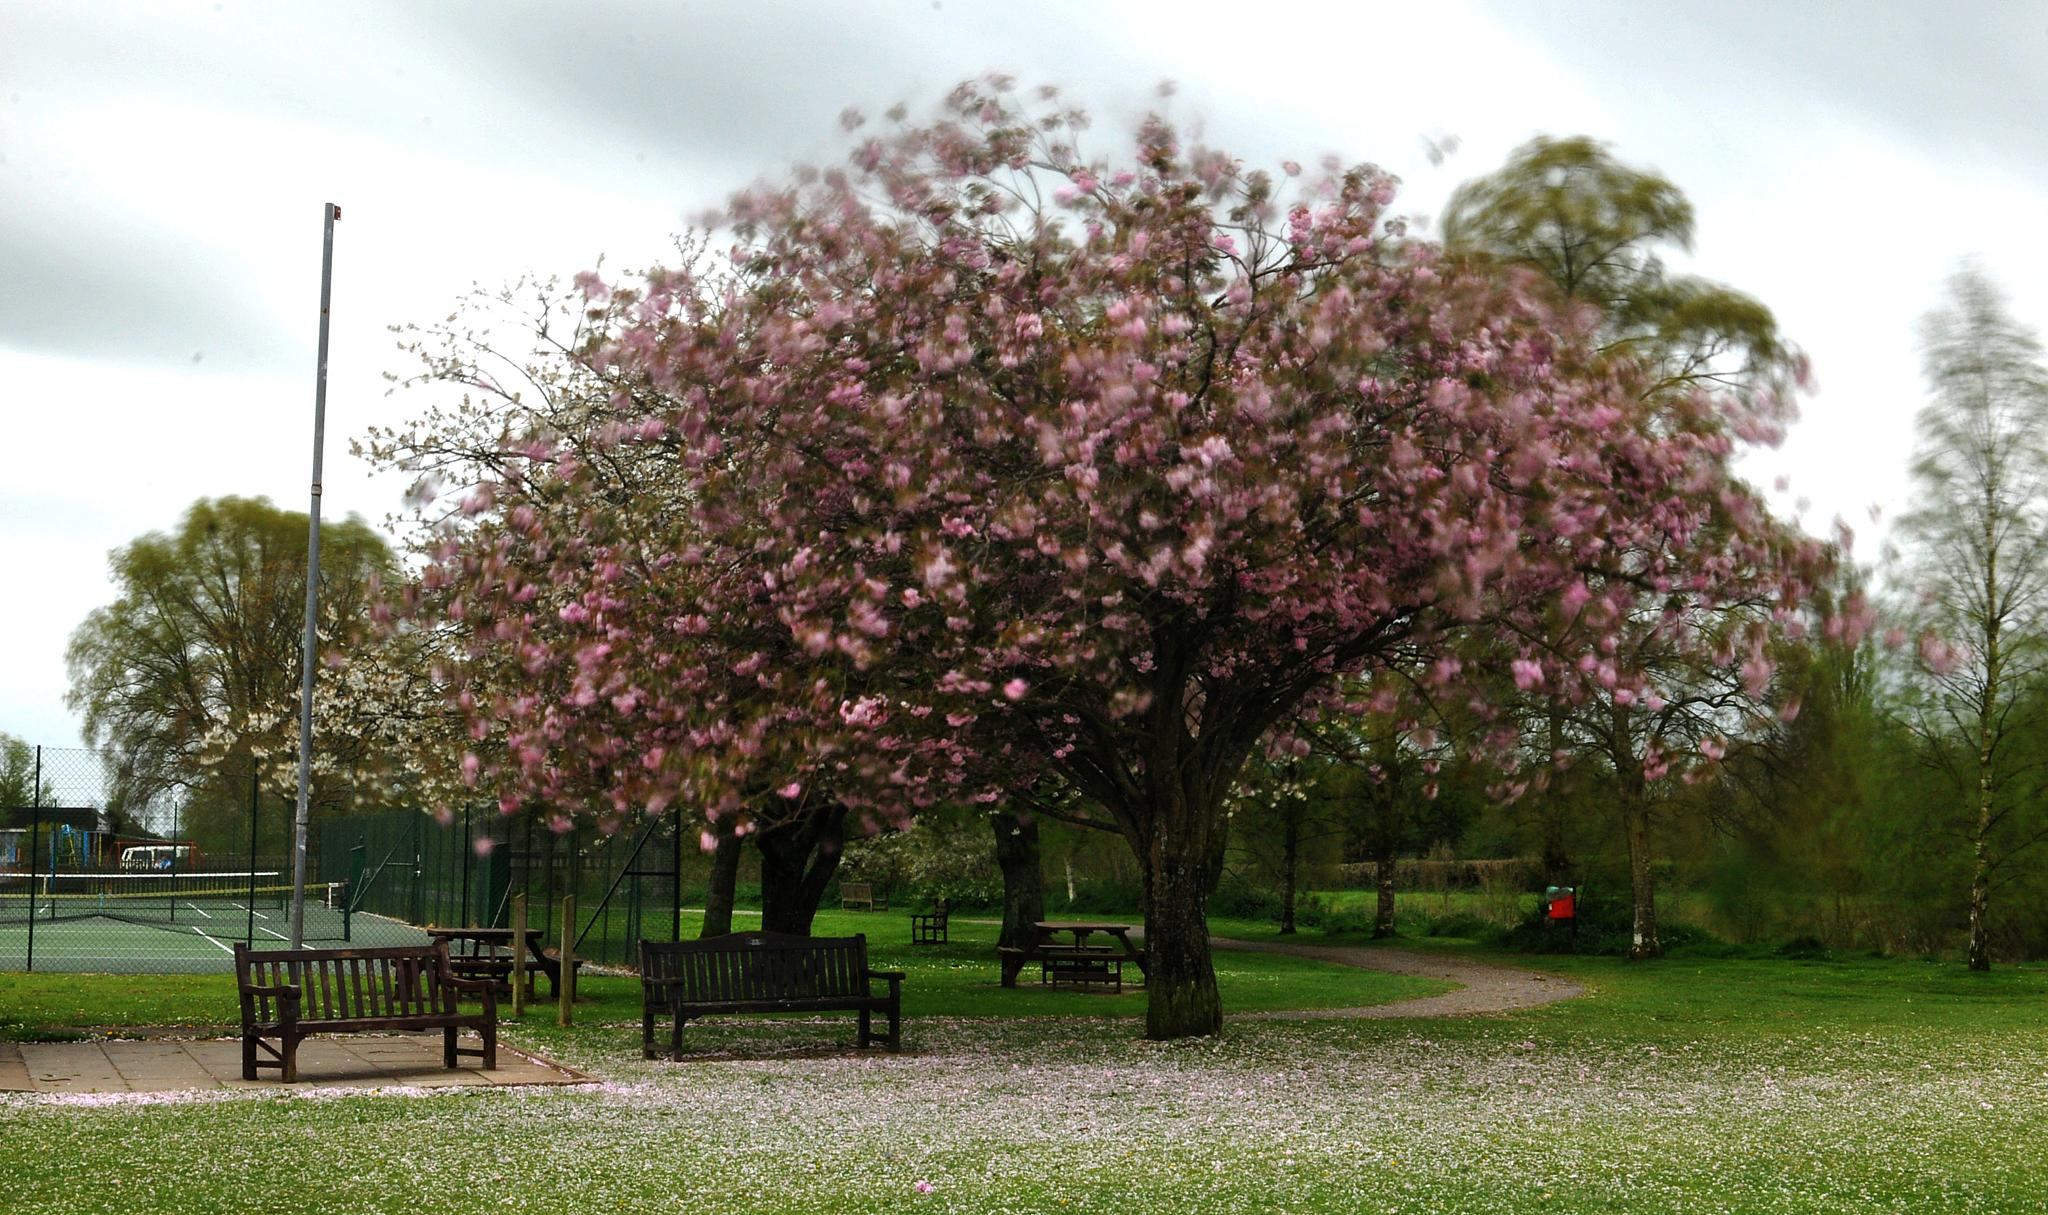 Blossom in the wind by Paul.Taylor